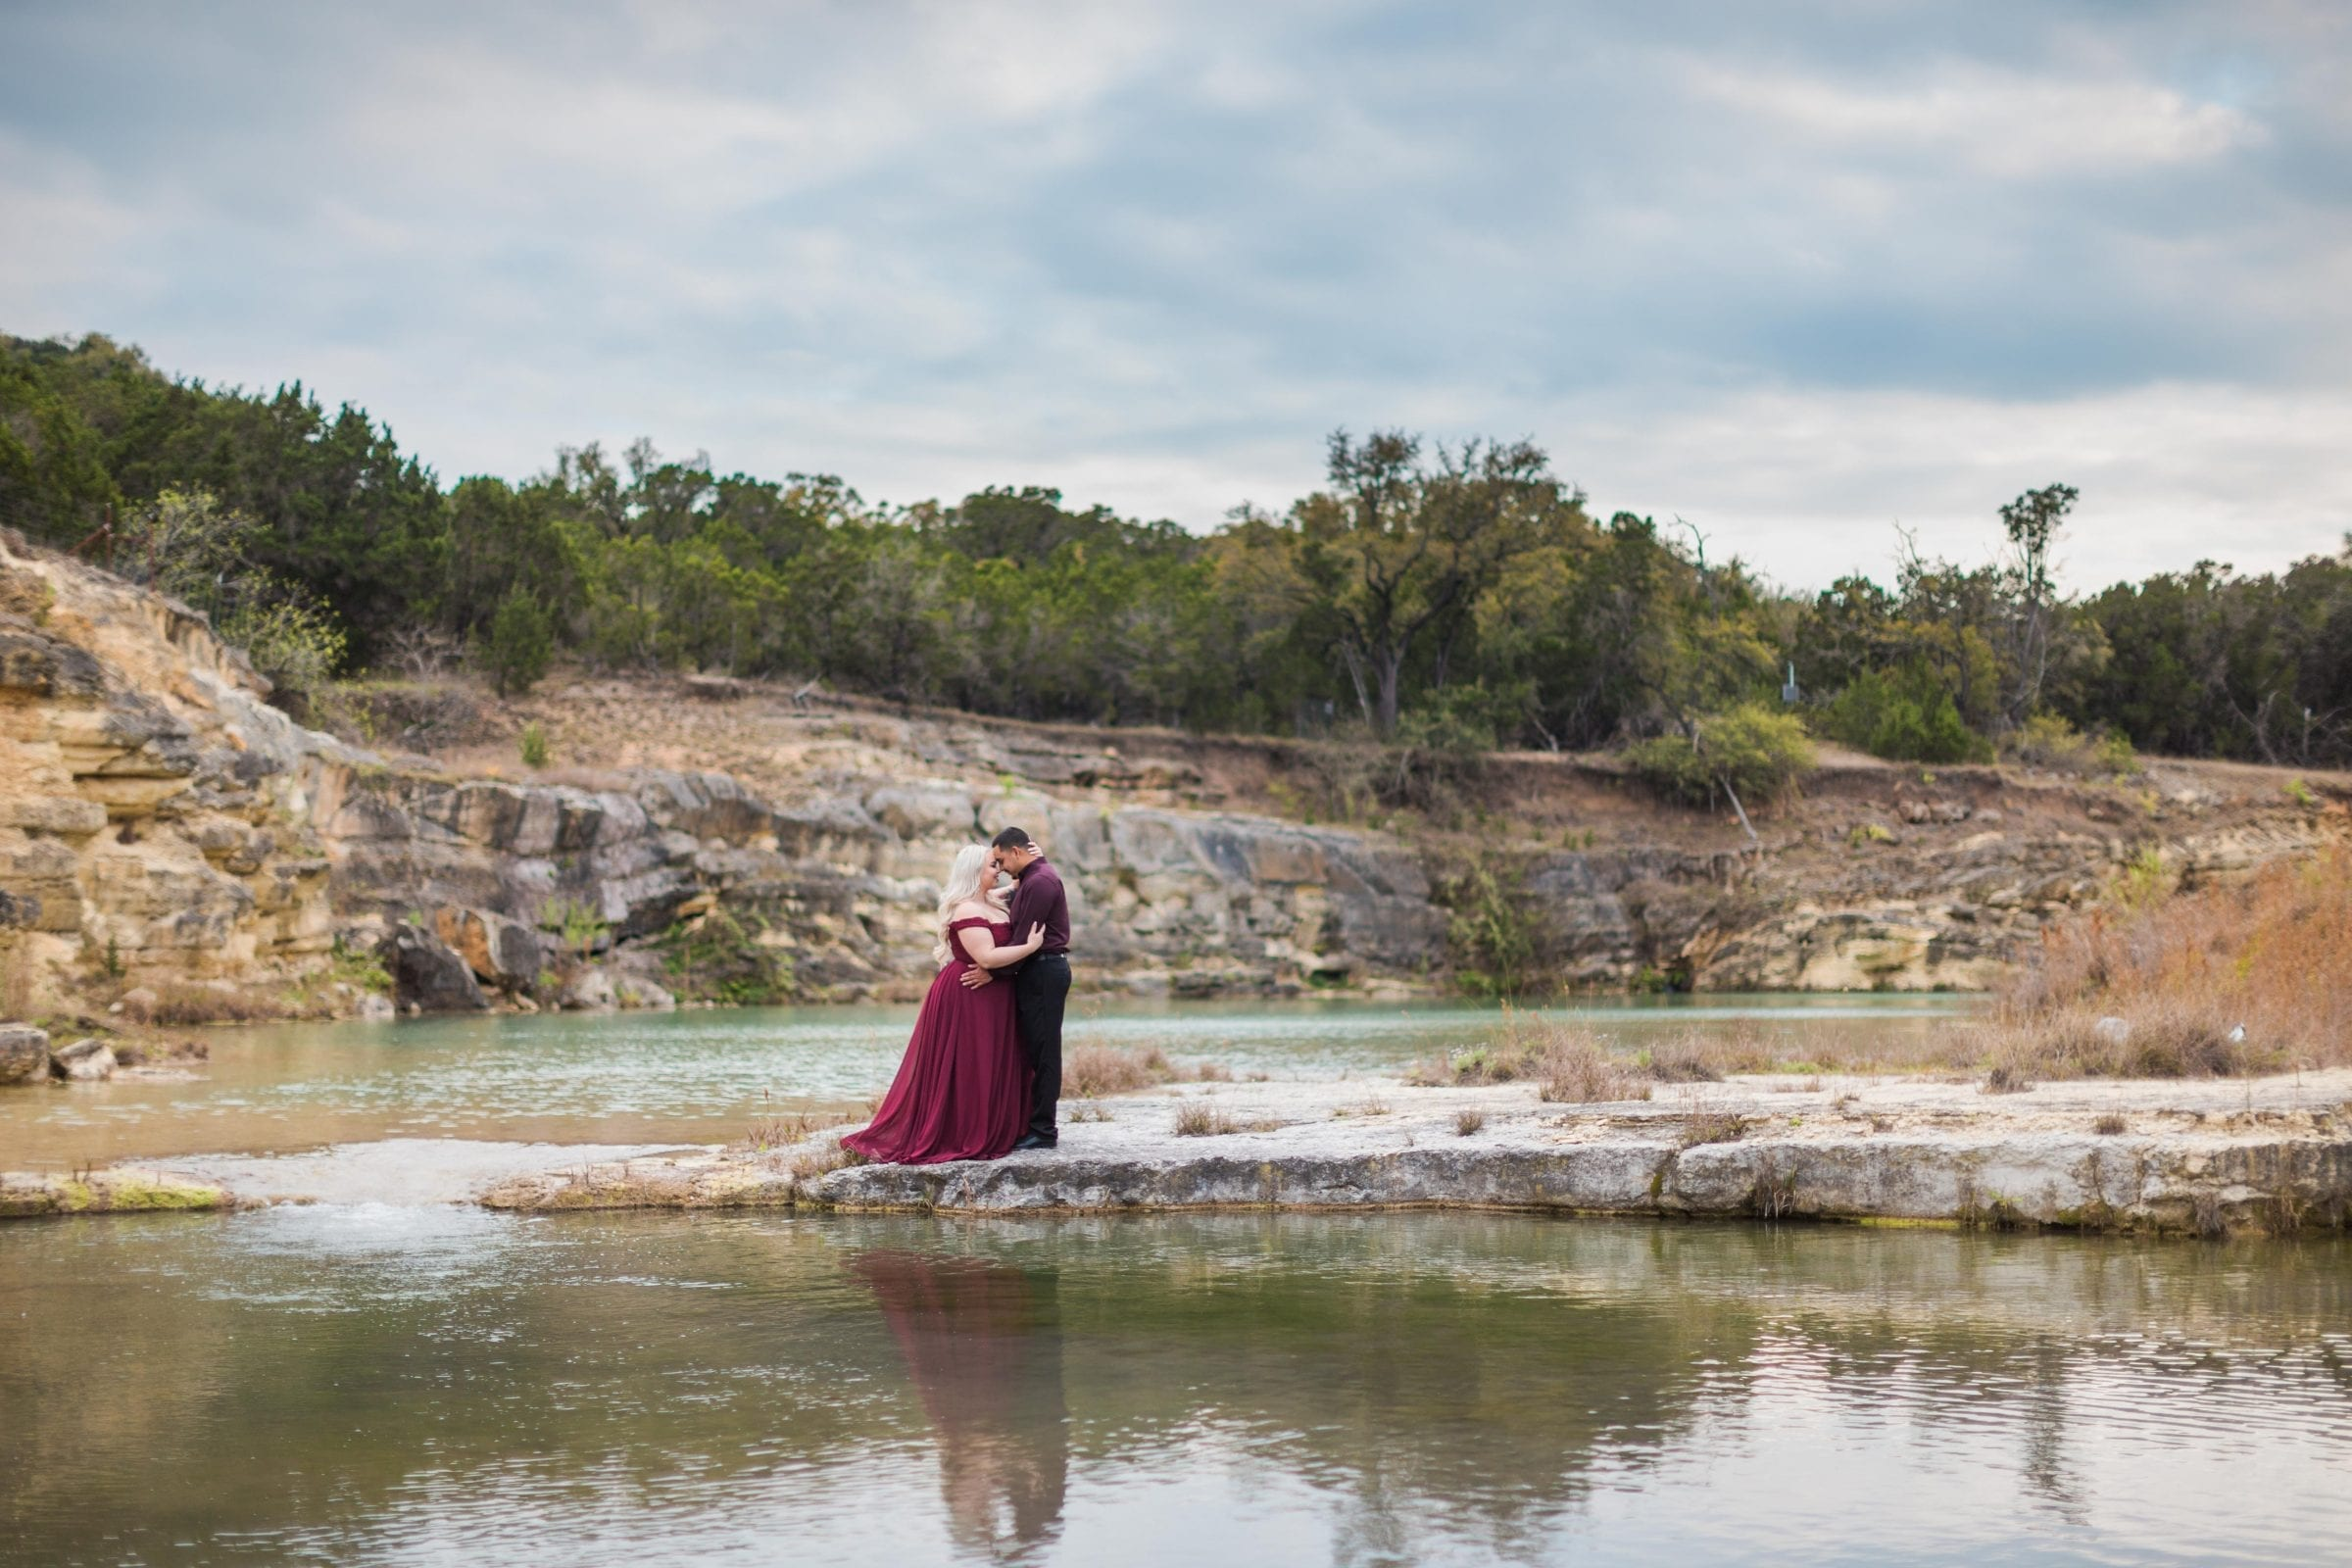 Katie and Gabe engagement session Canyon Lake dam gorge on the island looking at ea other at water fall